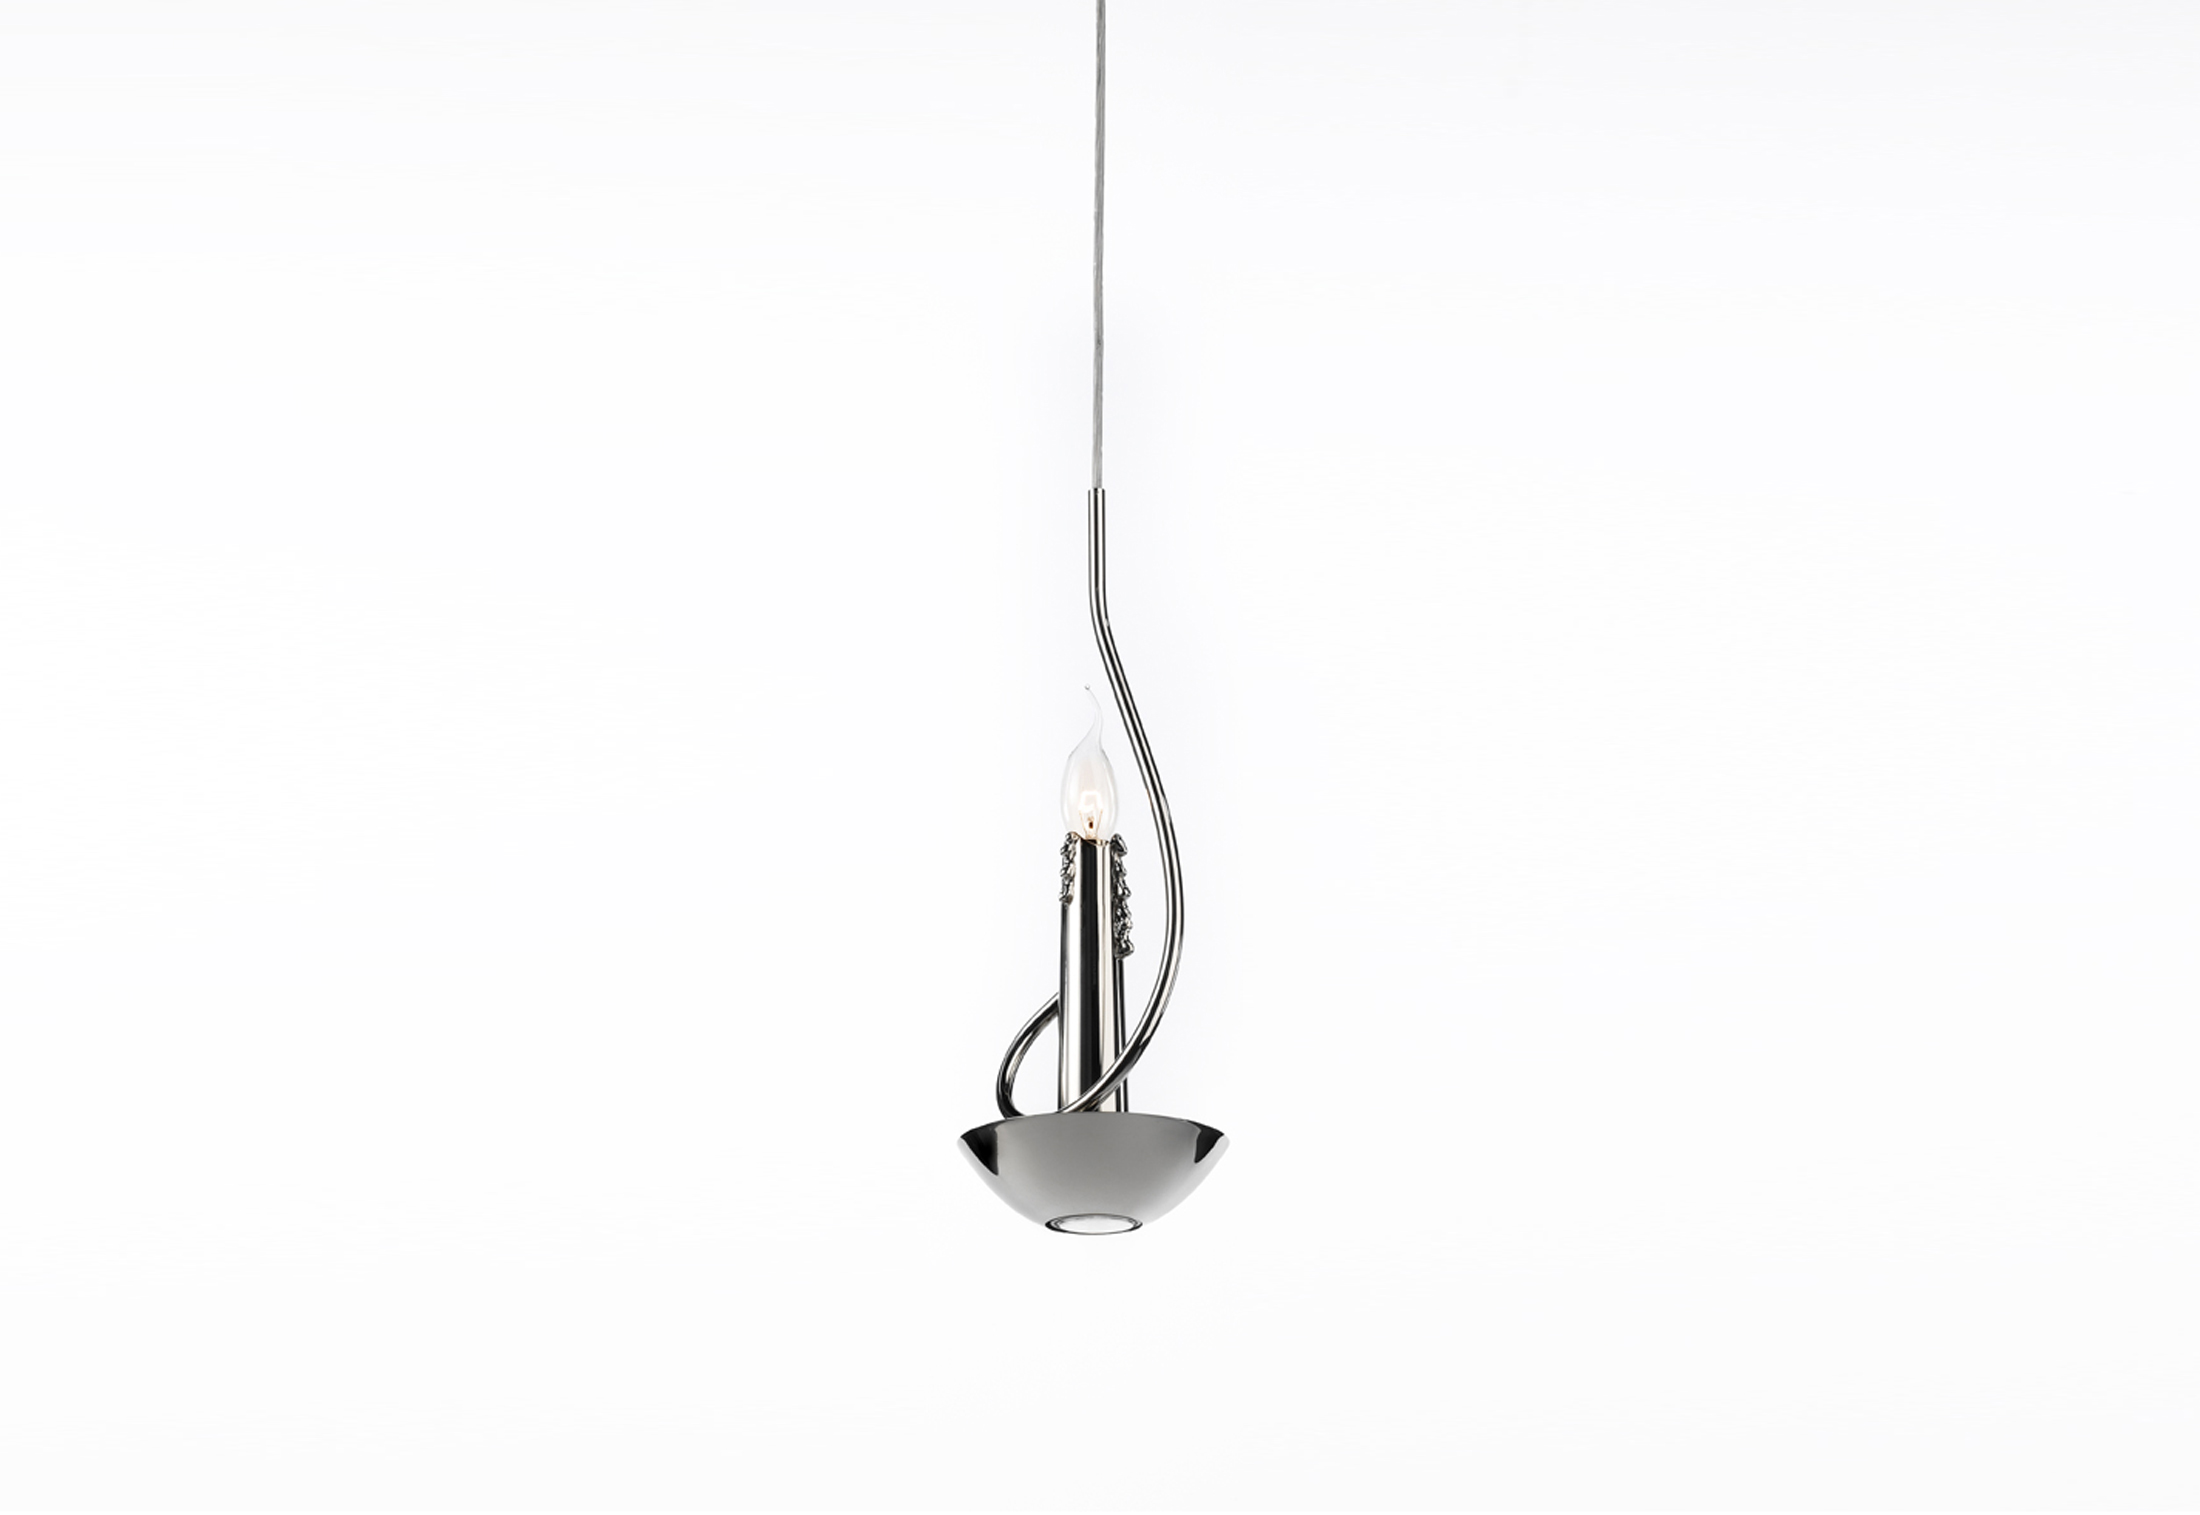 Floating Candles Hanging Lamp by Brand van Egmond